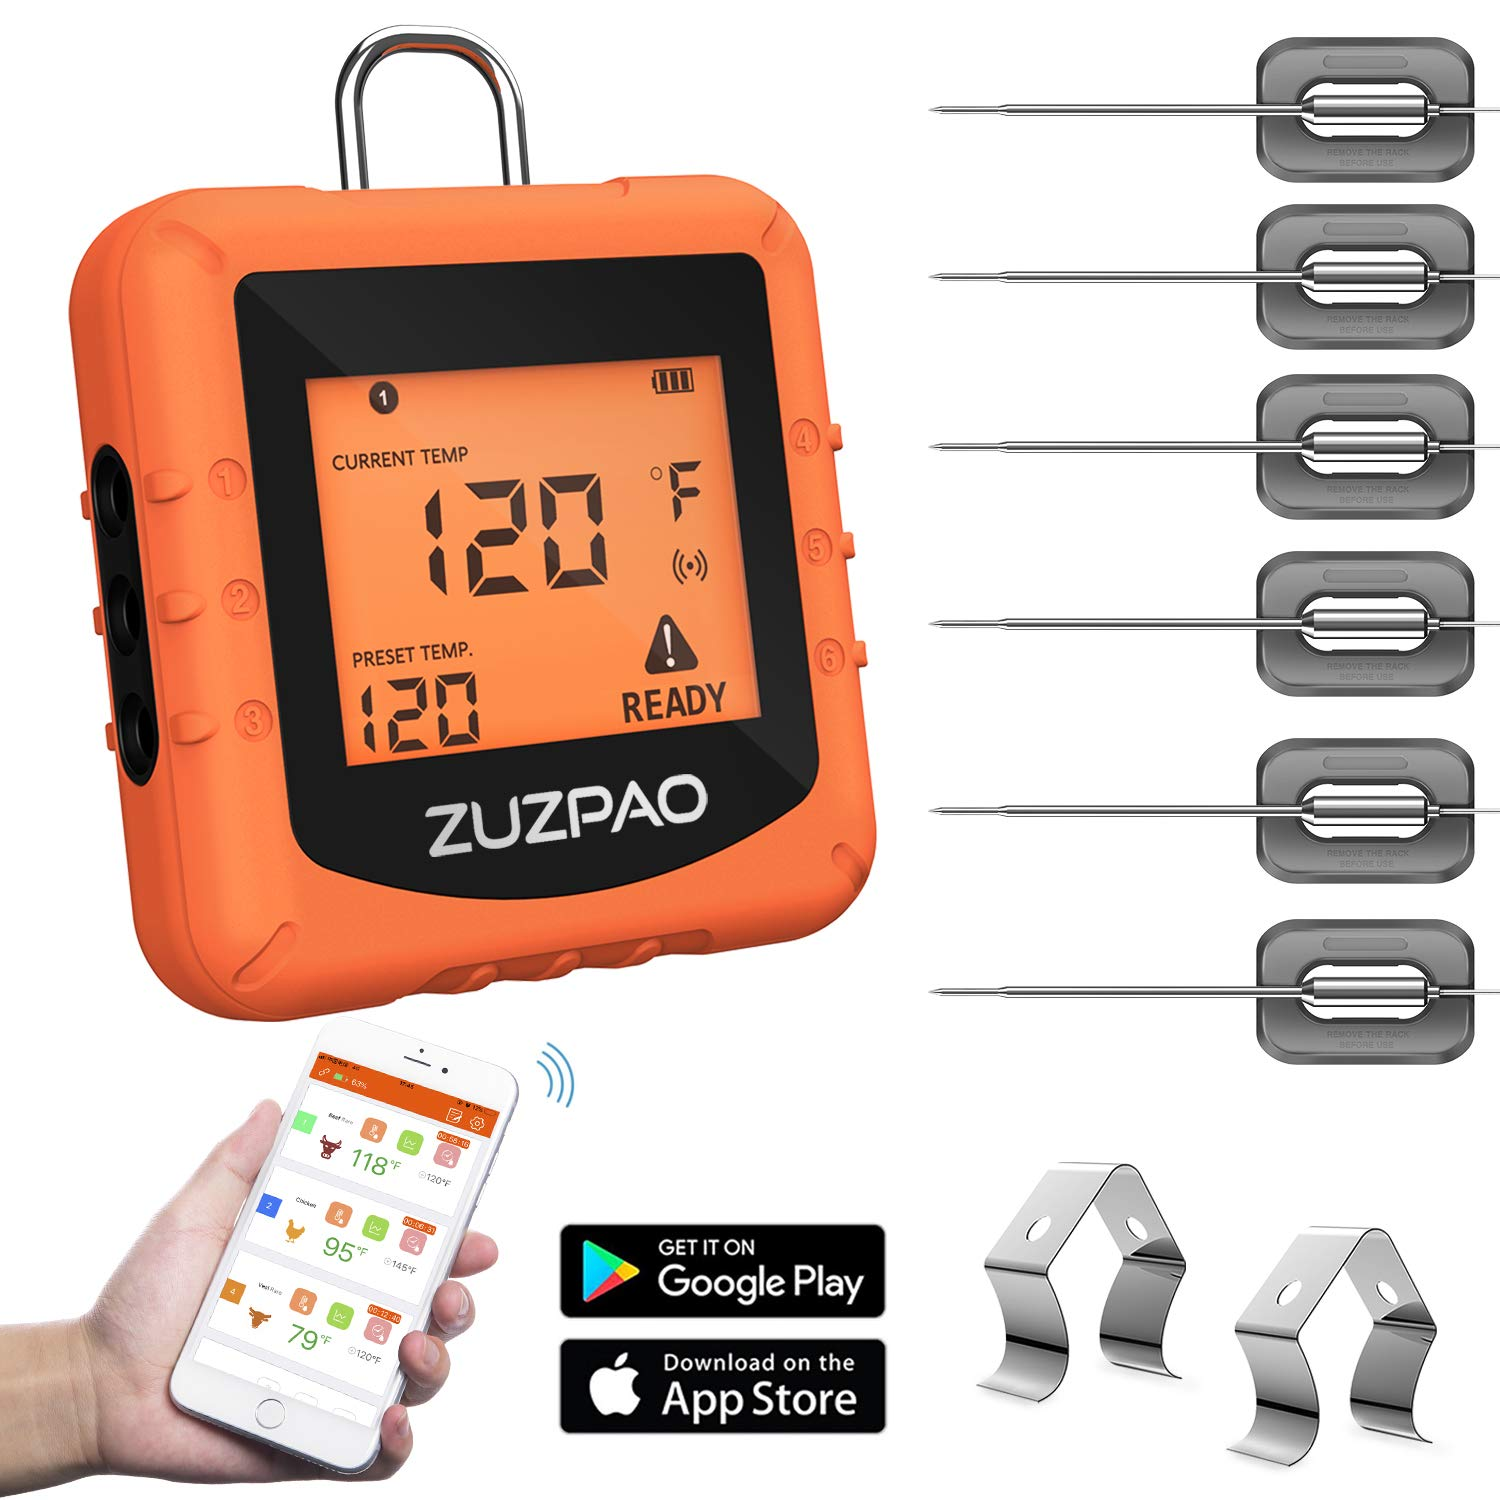 Meat Thermometer for Grilling, Zuzpao Wireless Digital BBQ Smoker Grill Remote Thermometer 6 Stainless Steel Probes and Smart APP Temperature Setting, Alarm Monitor Kitchen Cooking Thermometer